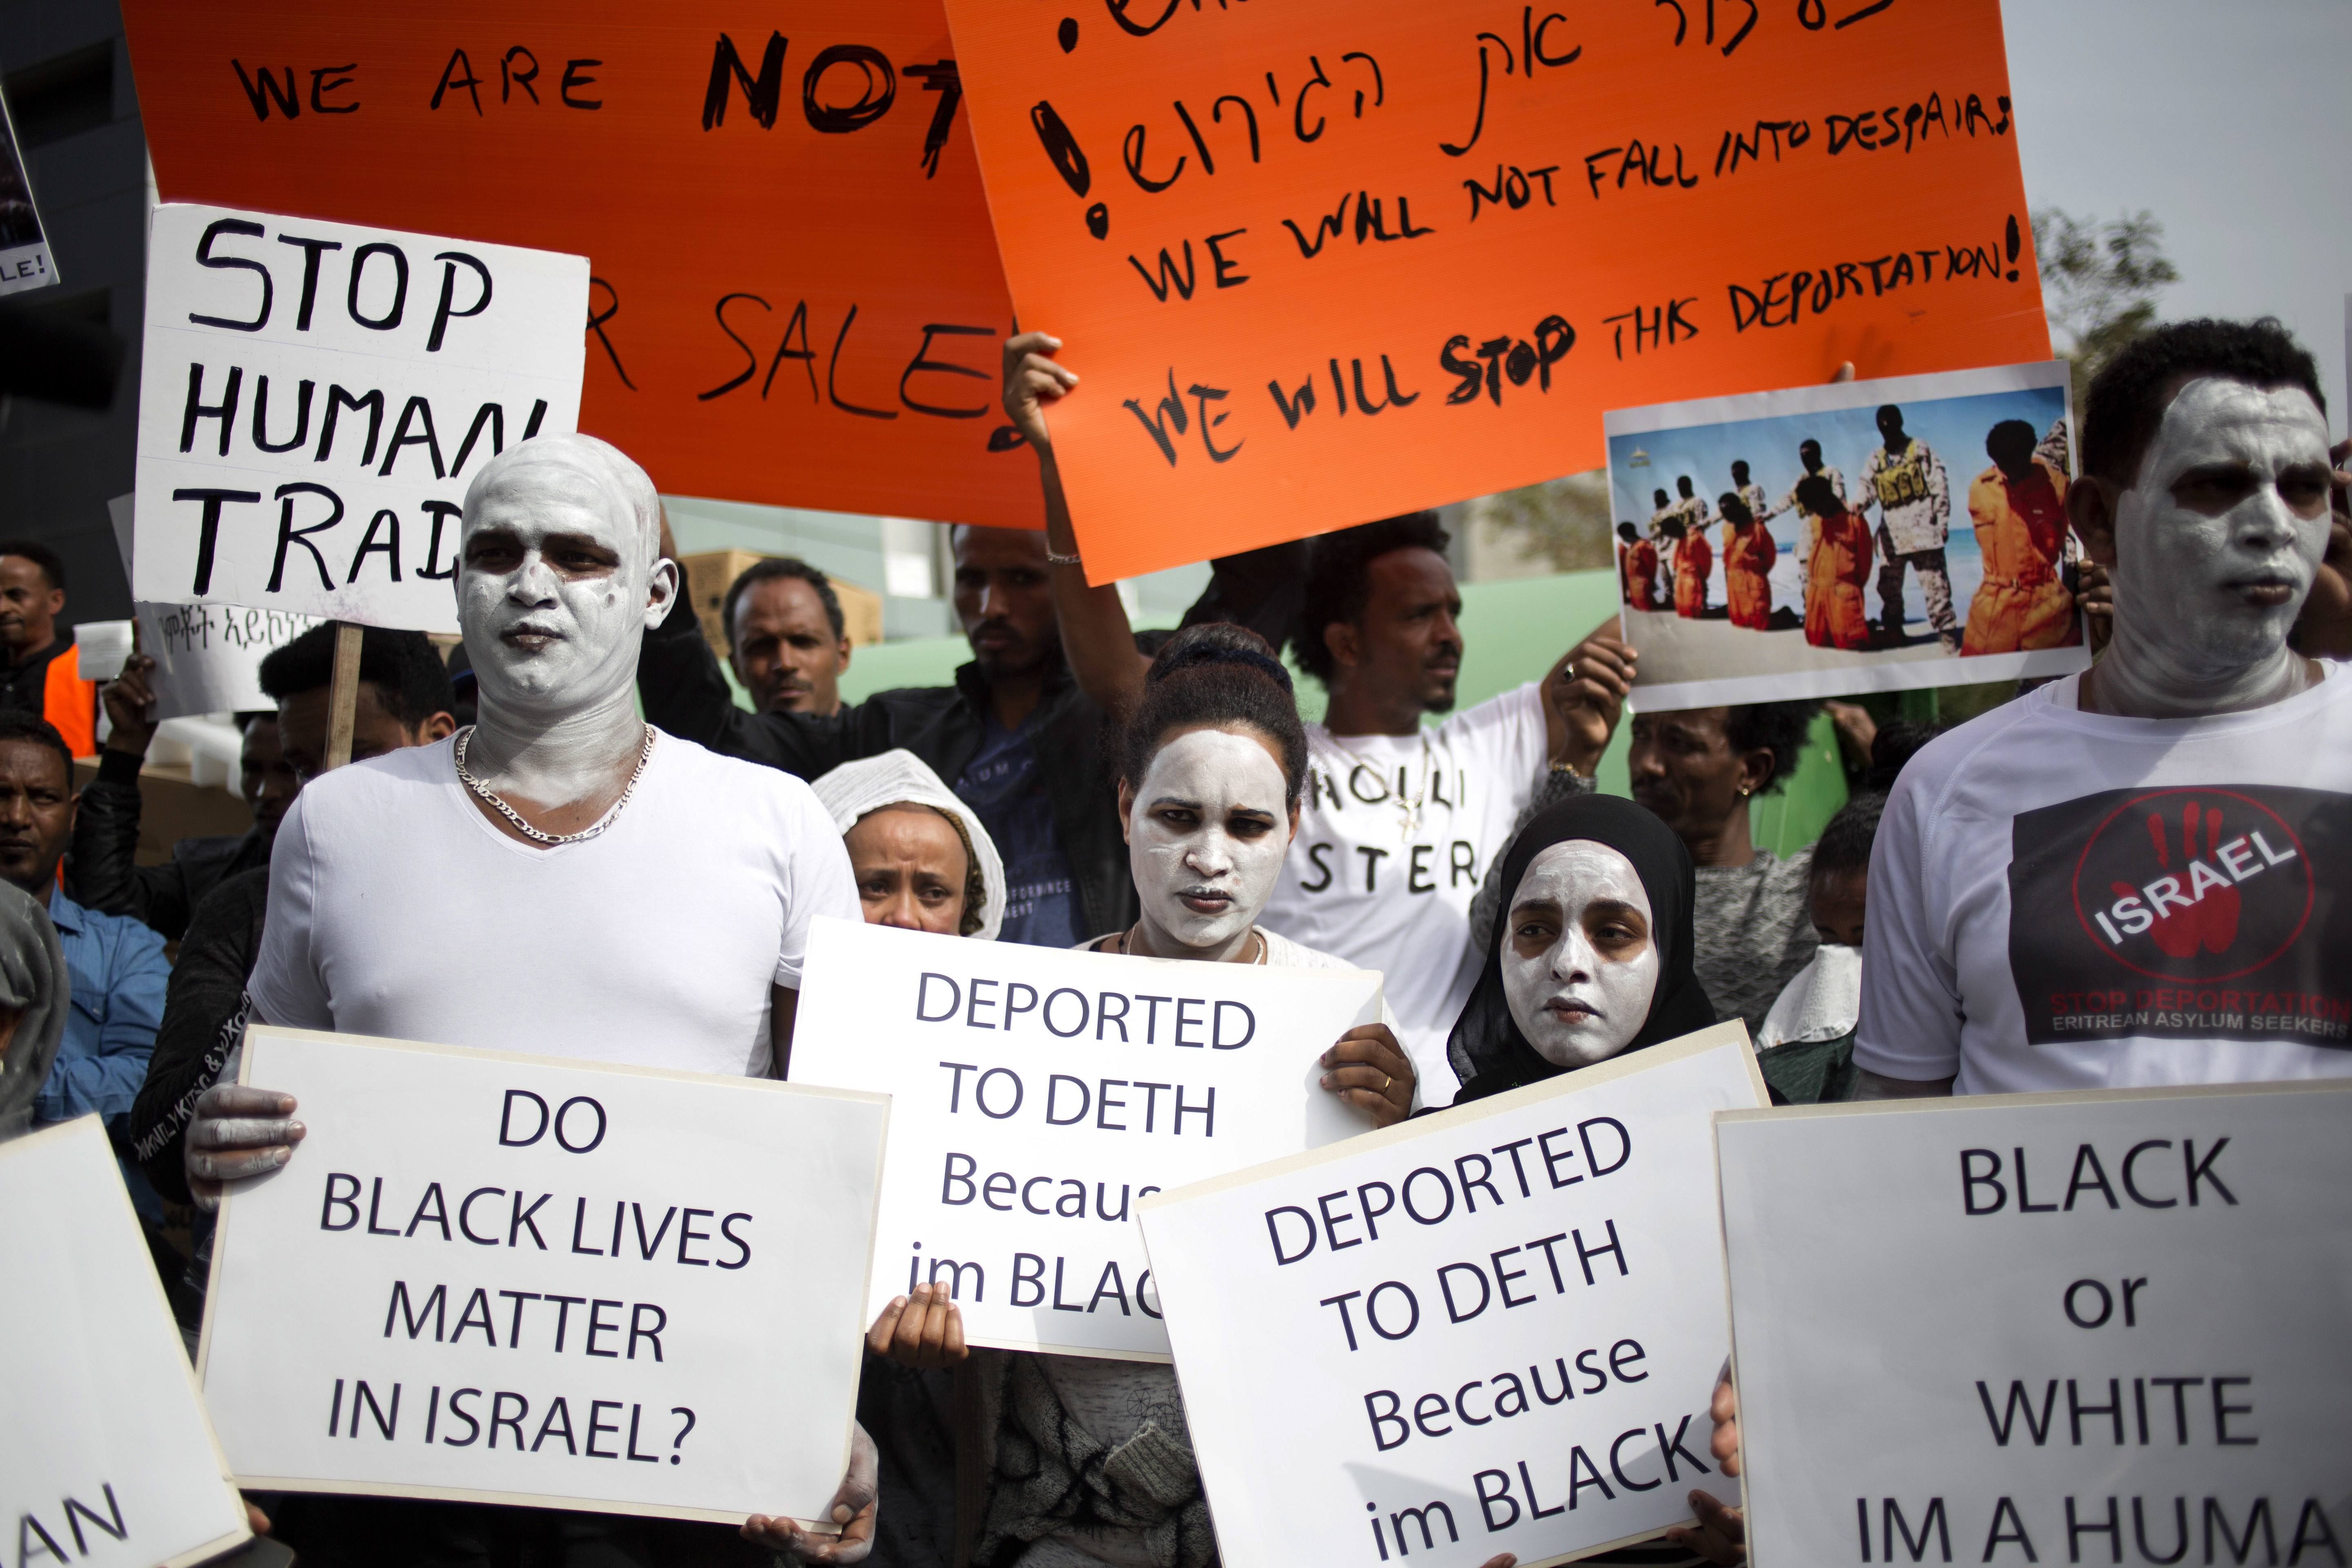 Tens of thousands of African asylum seekers have until April 1 to leave Isrel for an unnamed African destination in exchange for $3,500 and a plane ticket, or they will be incarcerated indefinitely.